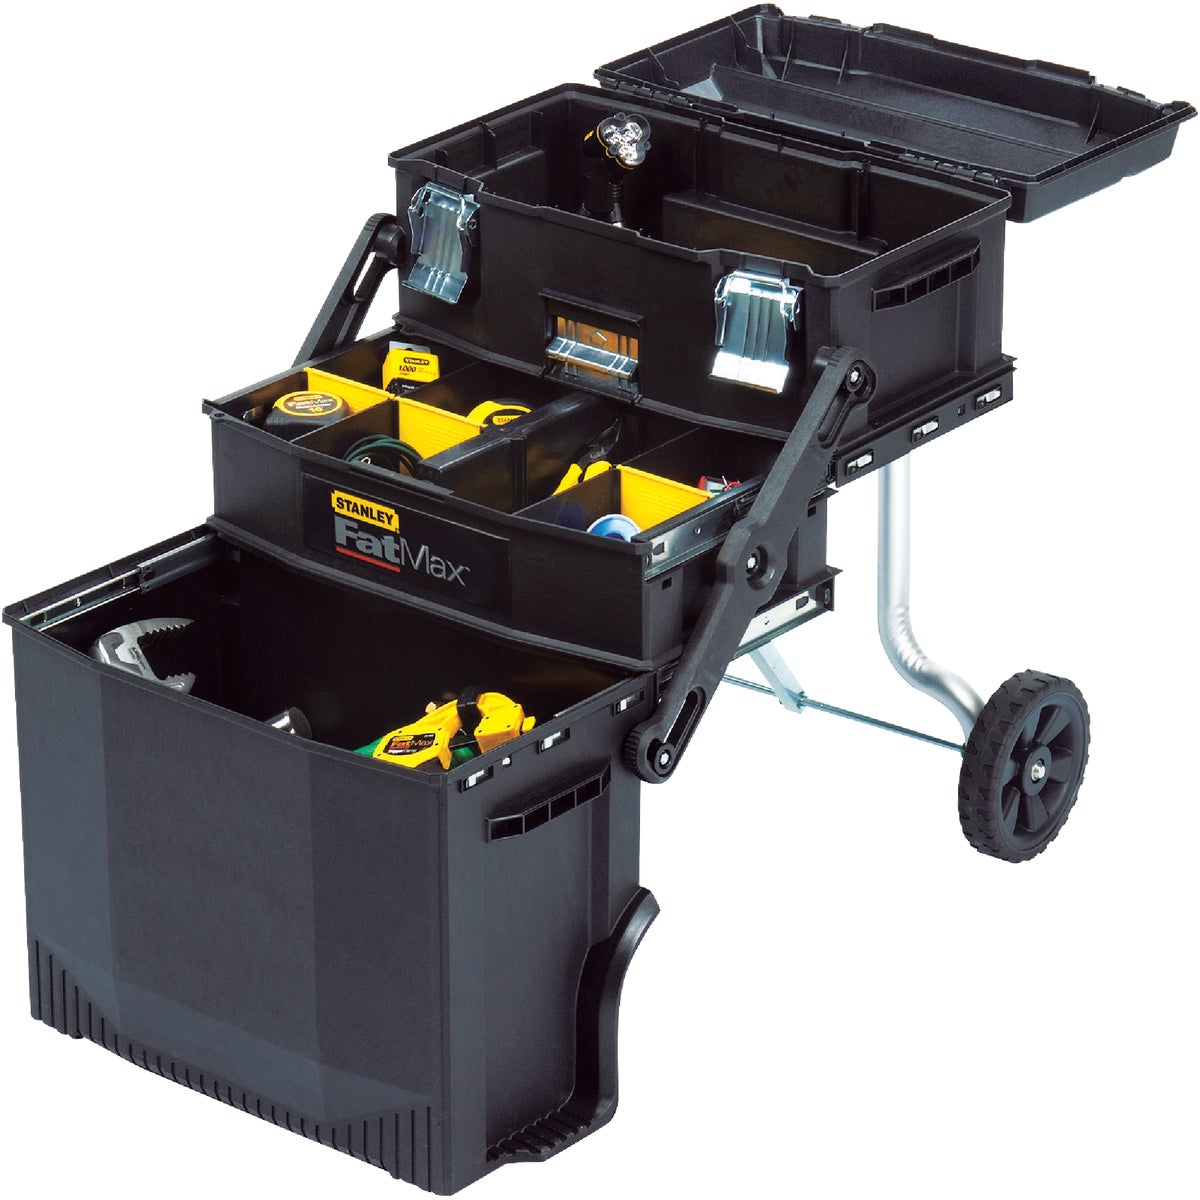 FM MOBILE WORKSTATION - 020800R by Stanley Tools